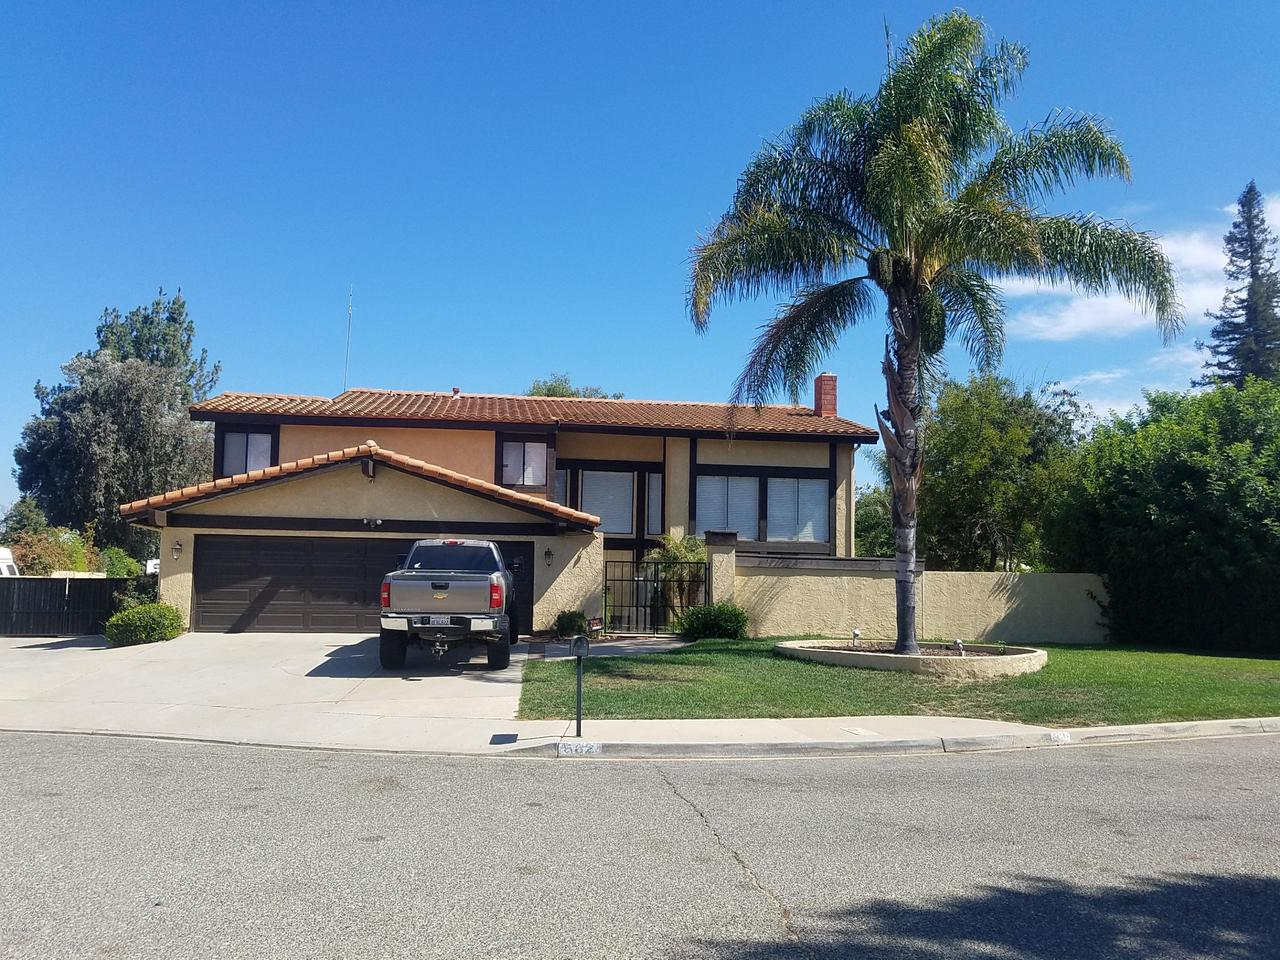 562 PINECLIFF, Simi Valley, CA 93065 - 20180829_104355